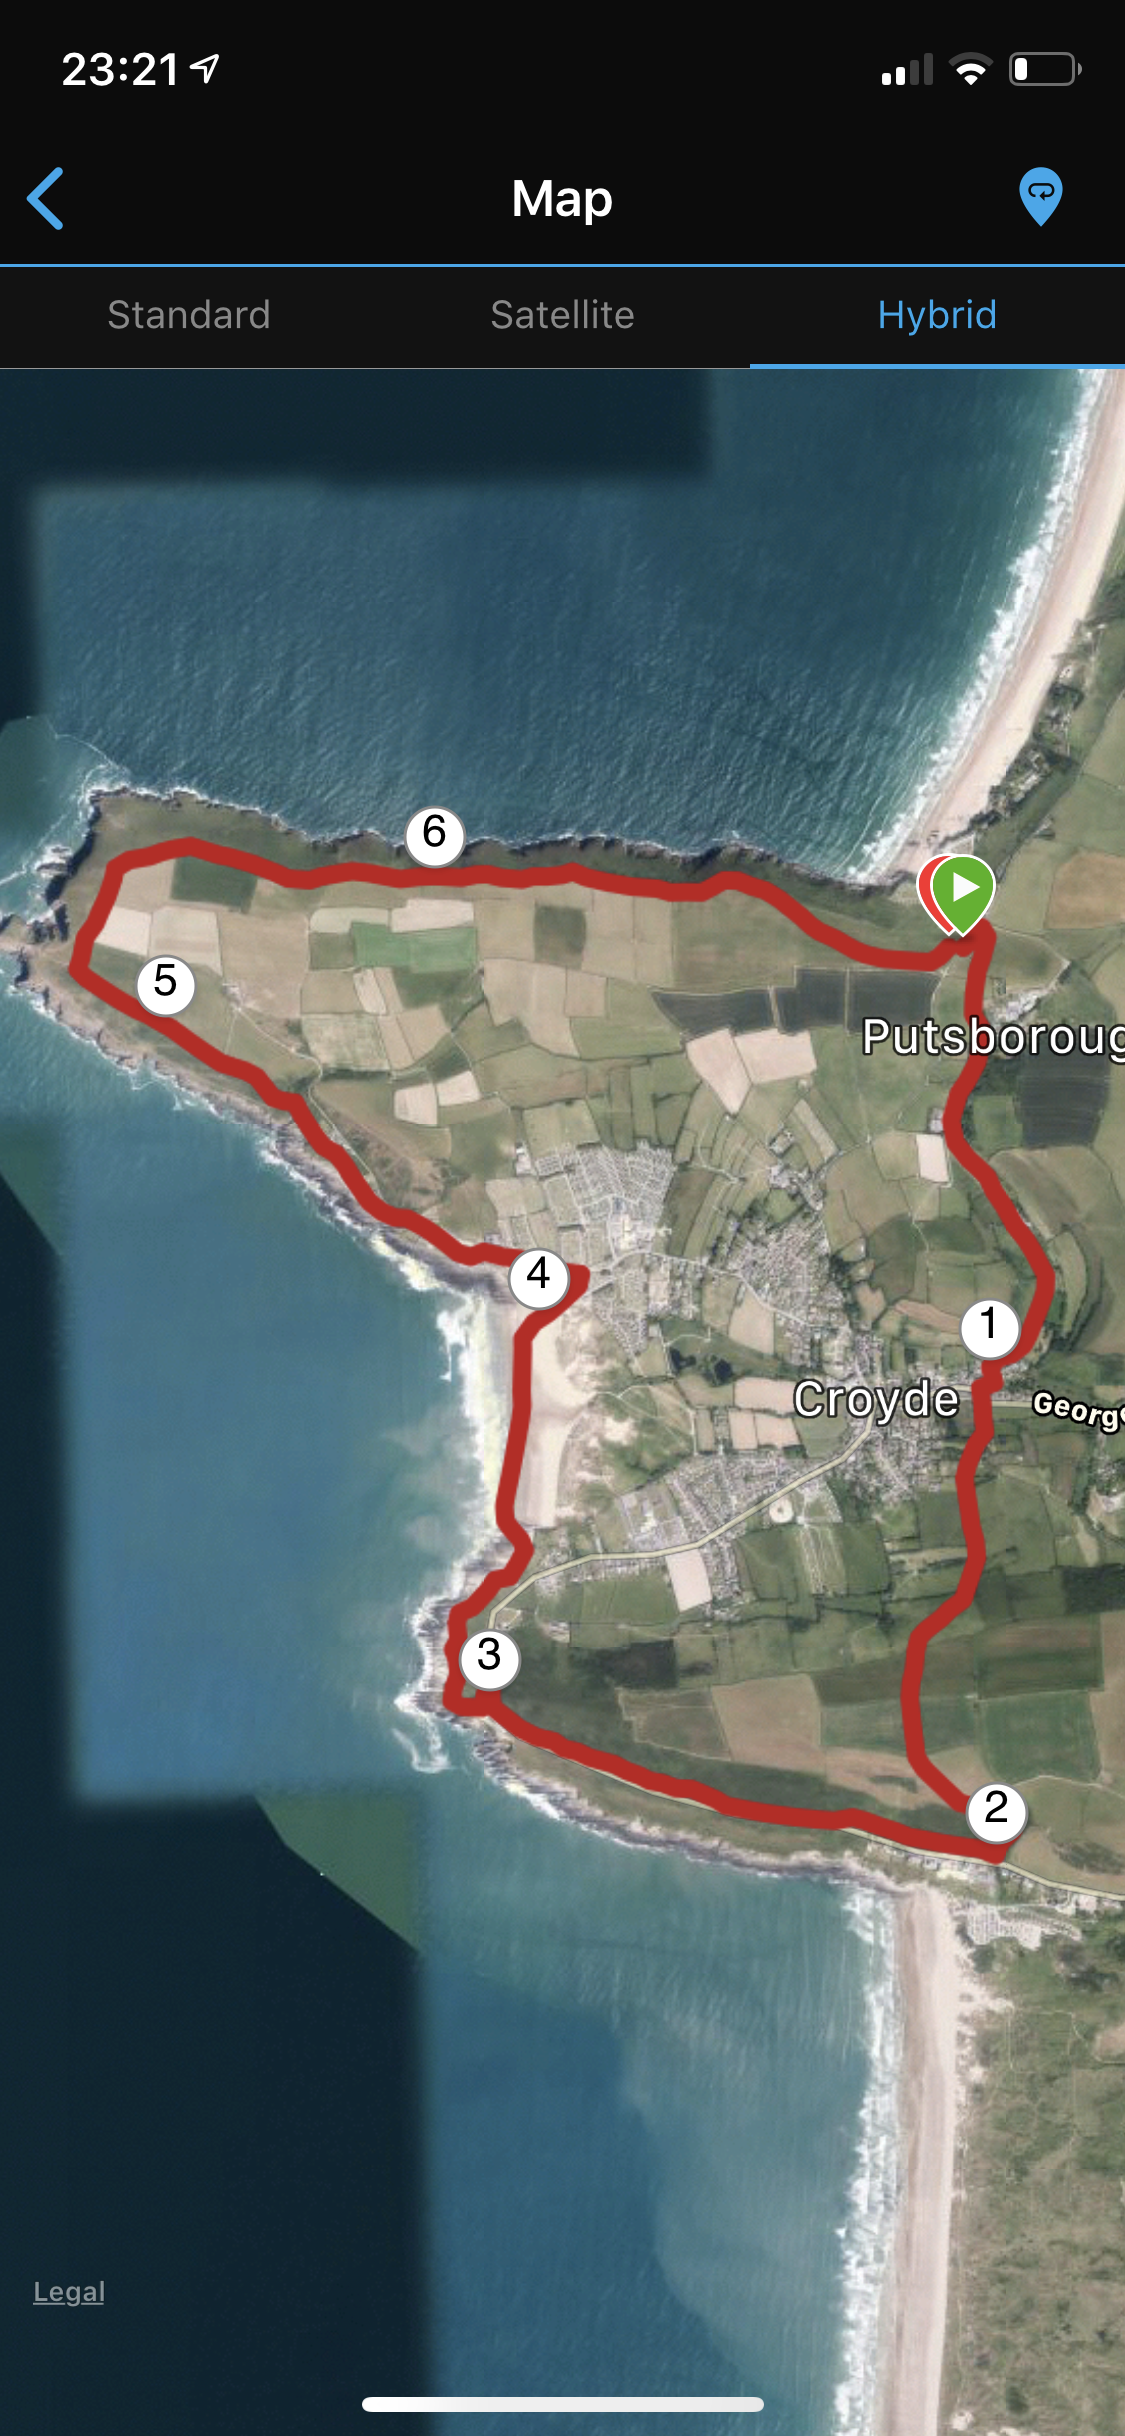 Croyde Ocean Triathlon Run Course